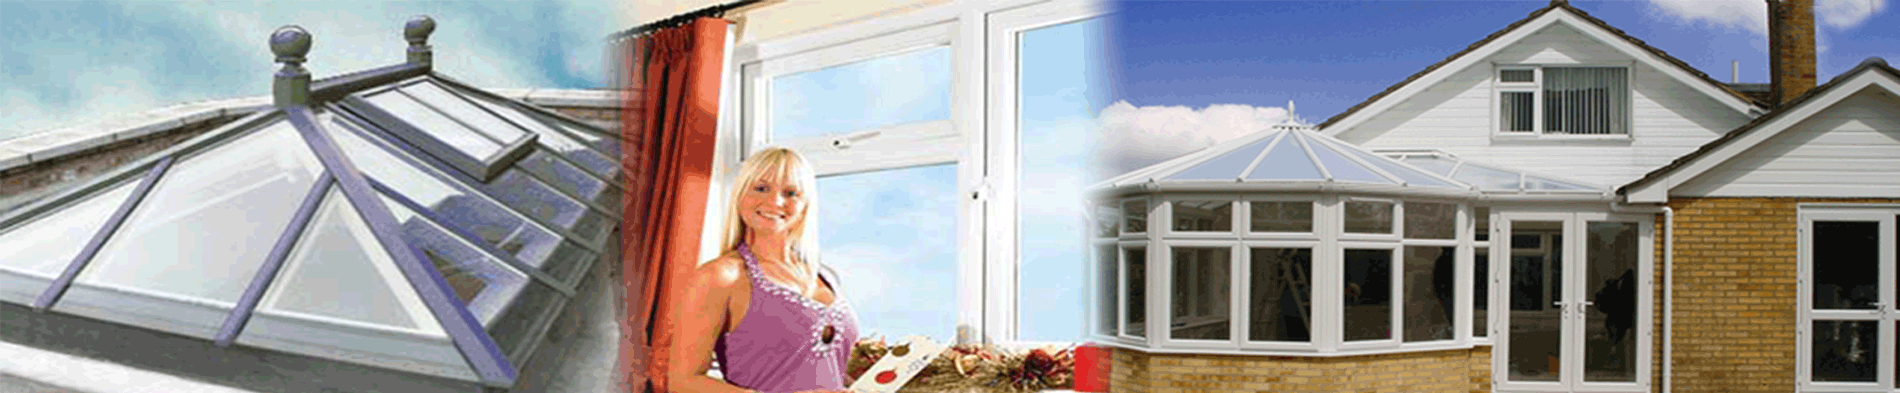 Bahama windows conservatories installation